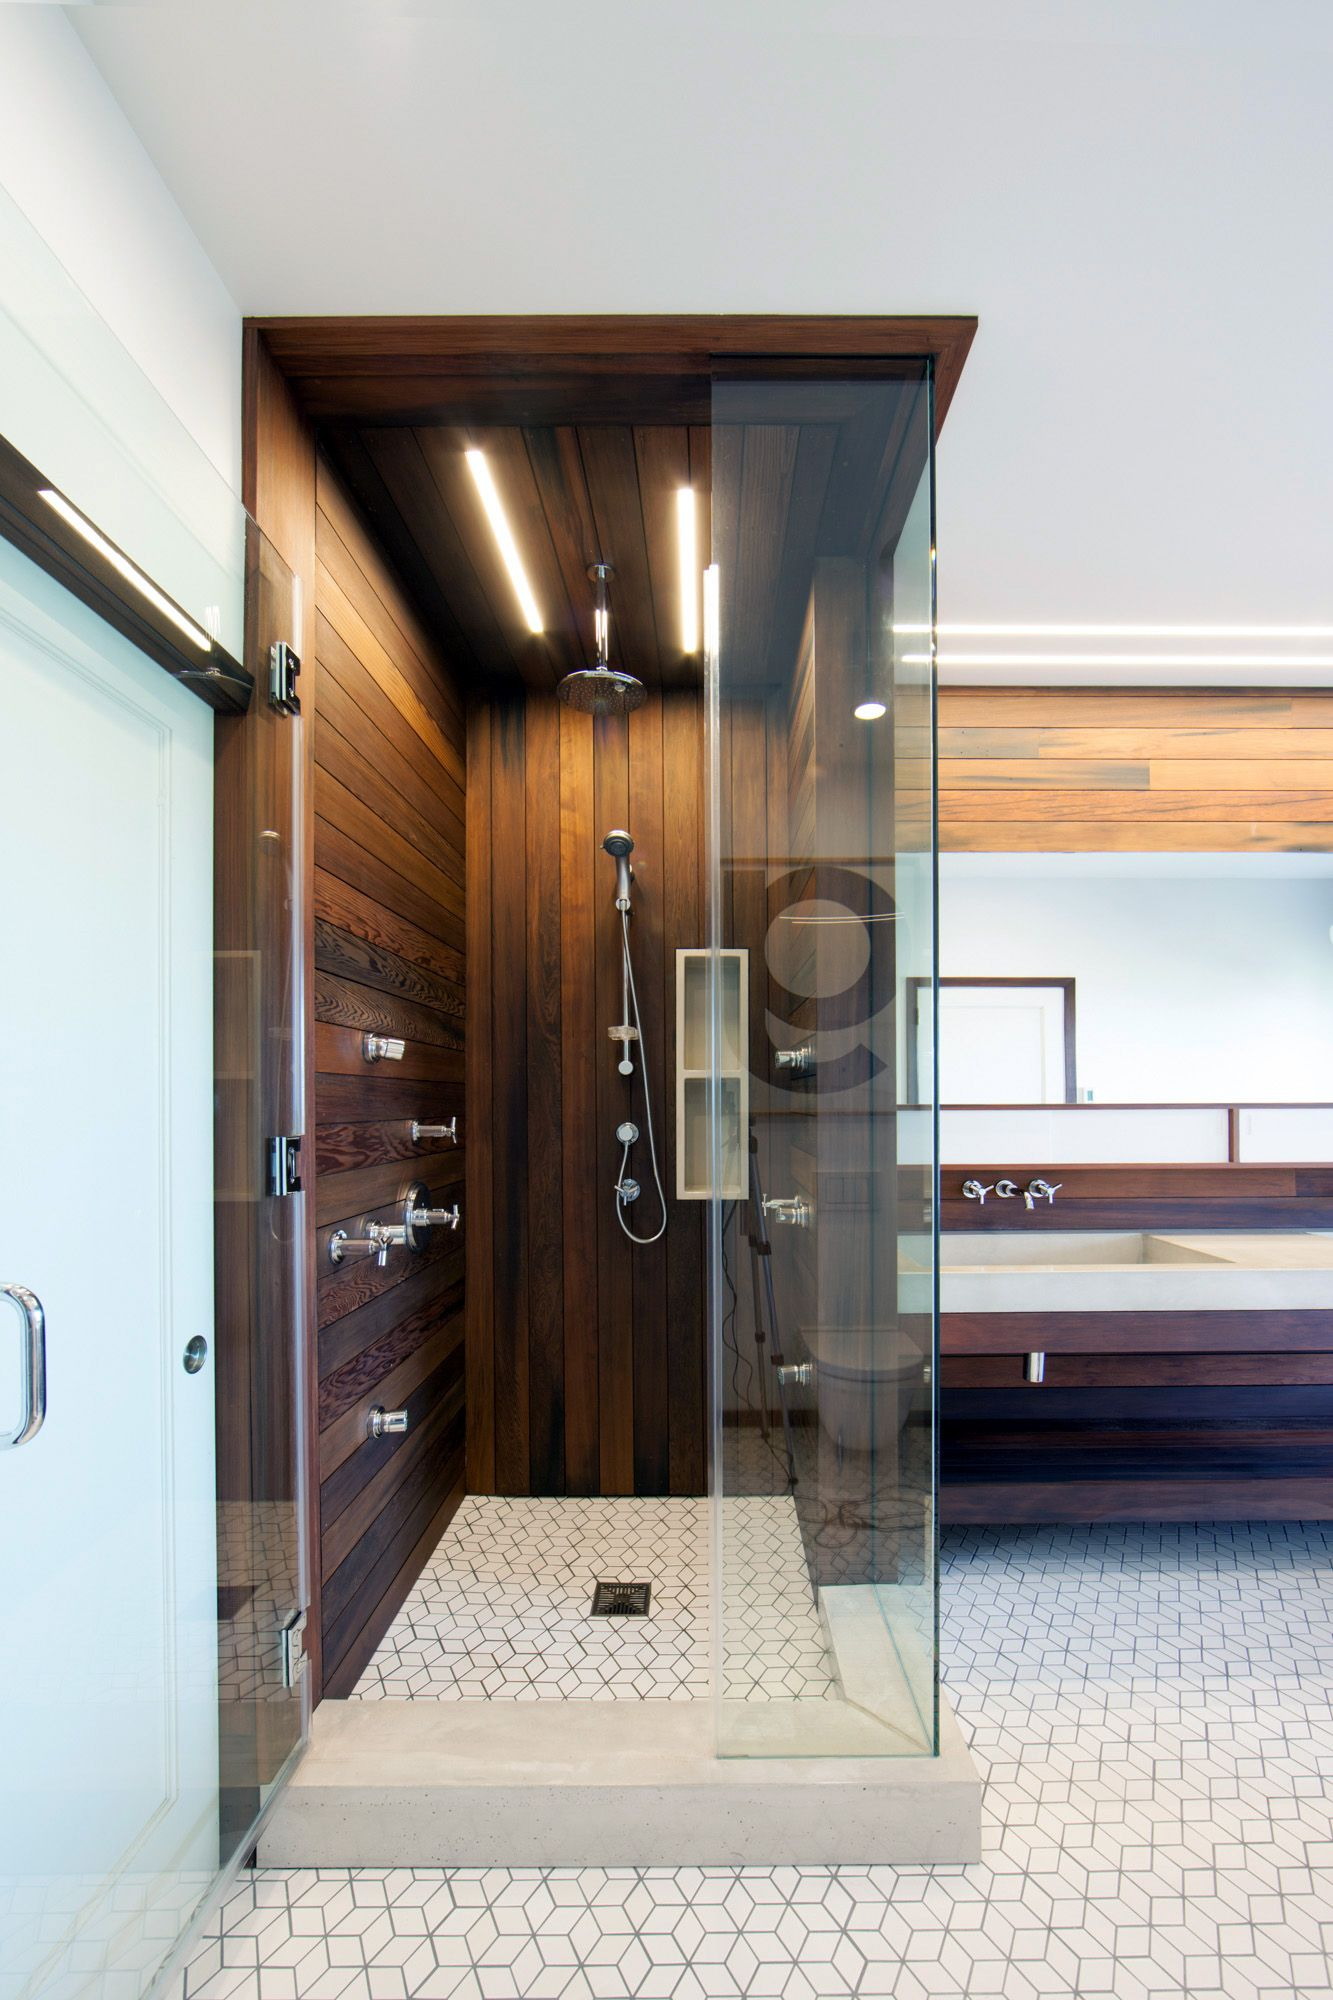 Bathroom Design San Francisco Extraordinary San Francisco Bathroom Design & Build Knife 12 & Saw  Arcson Inspiration